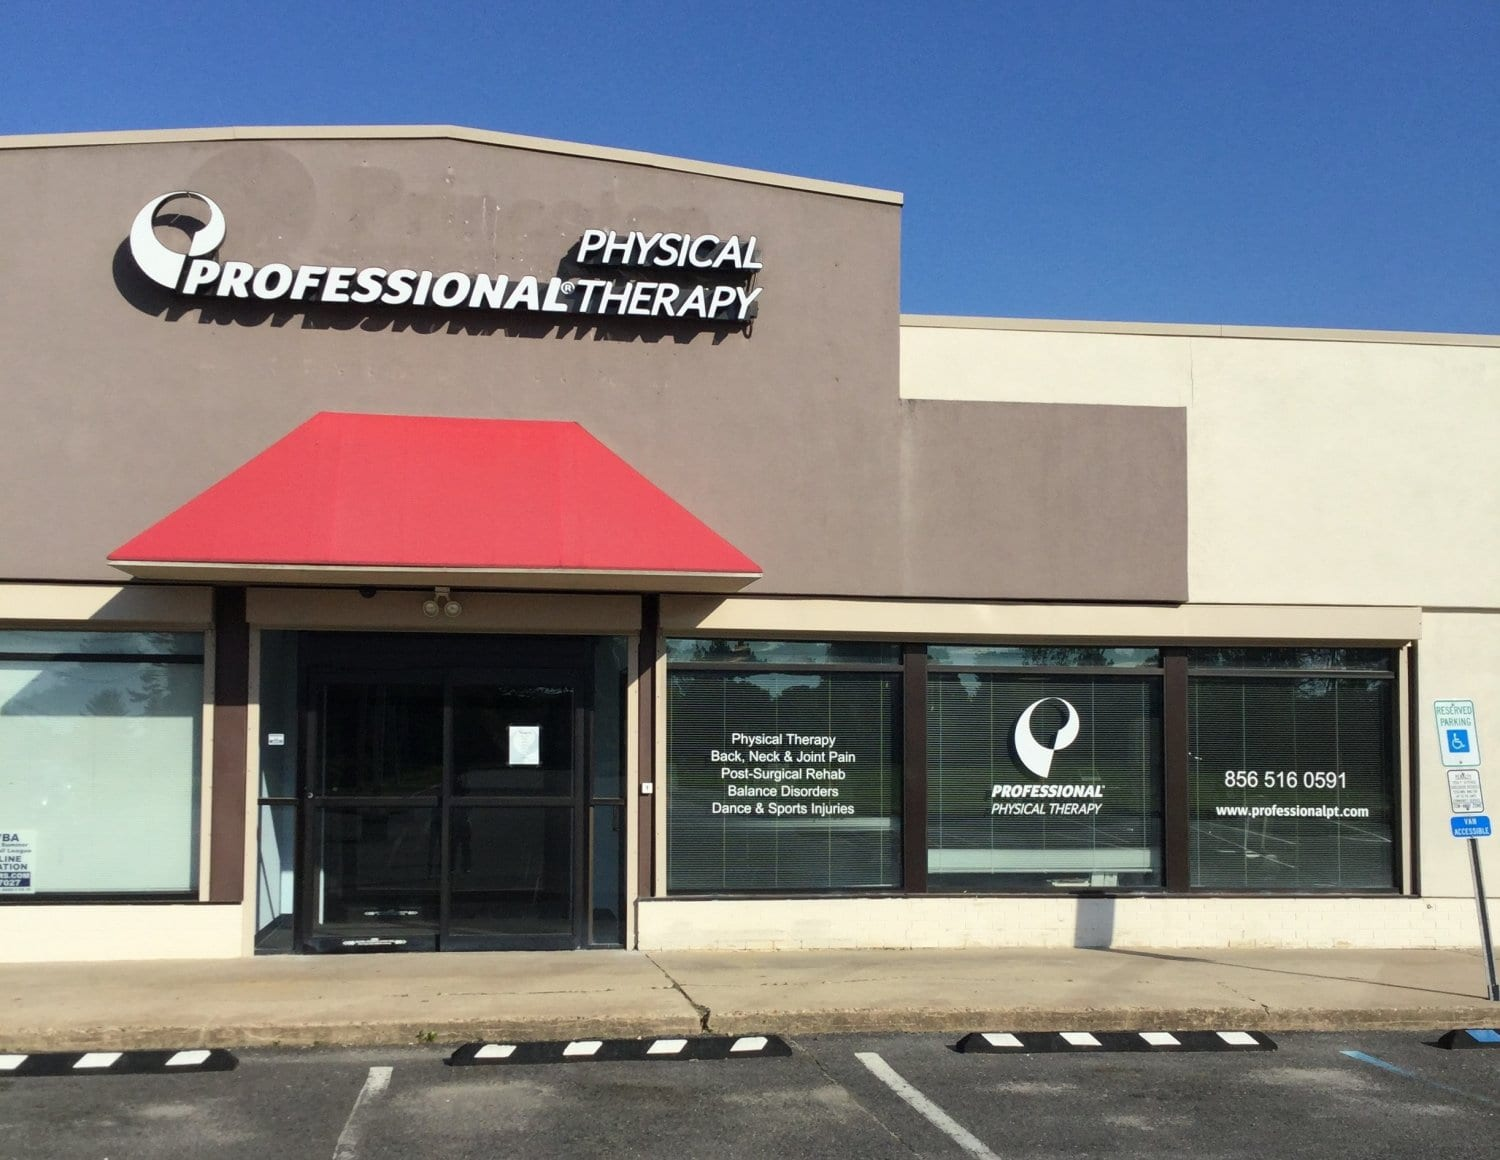 Here is the front entrance to our physical therapy clinic in Sicklerville, New Jersey.